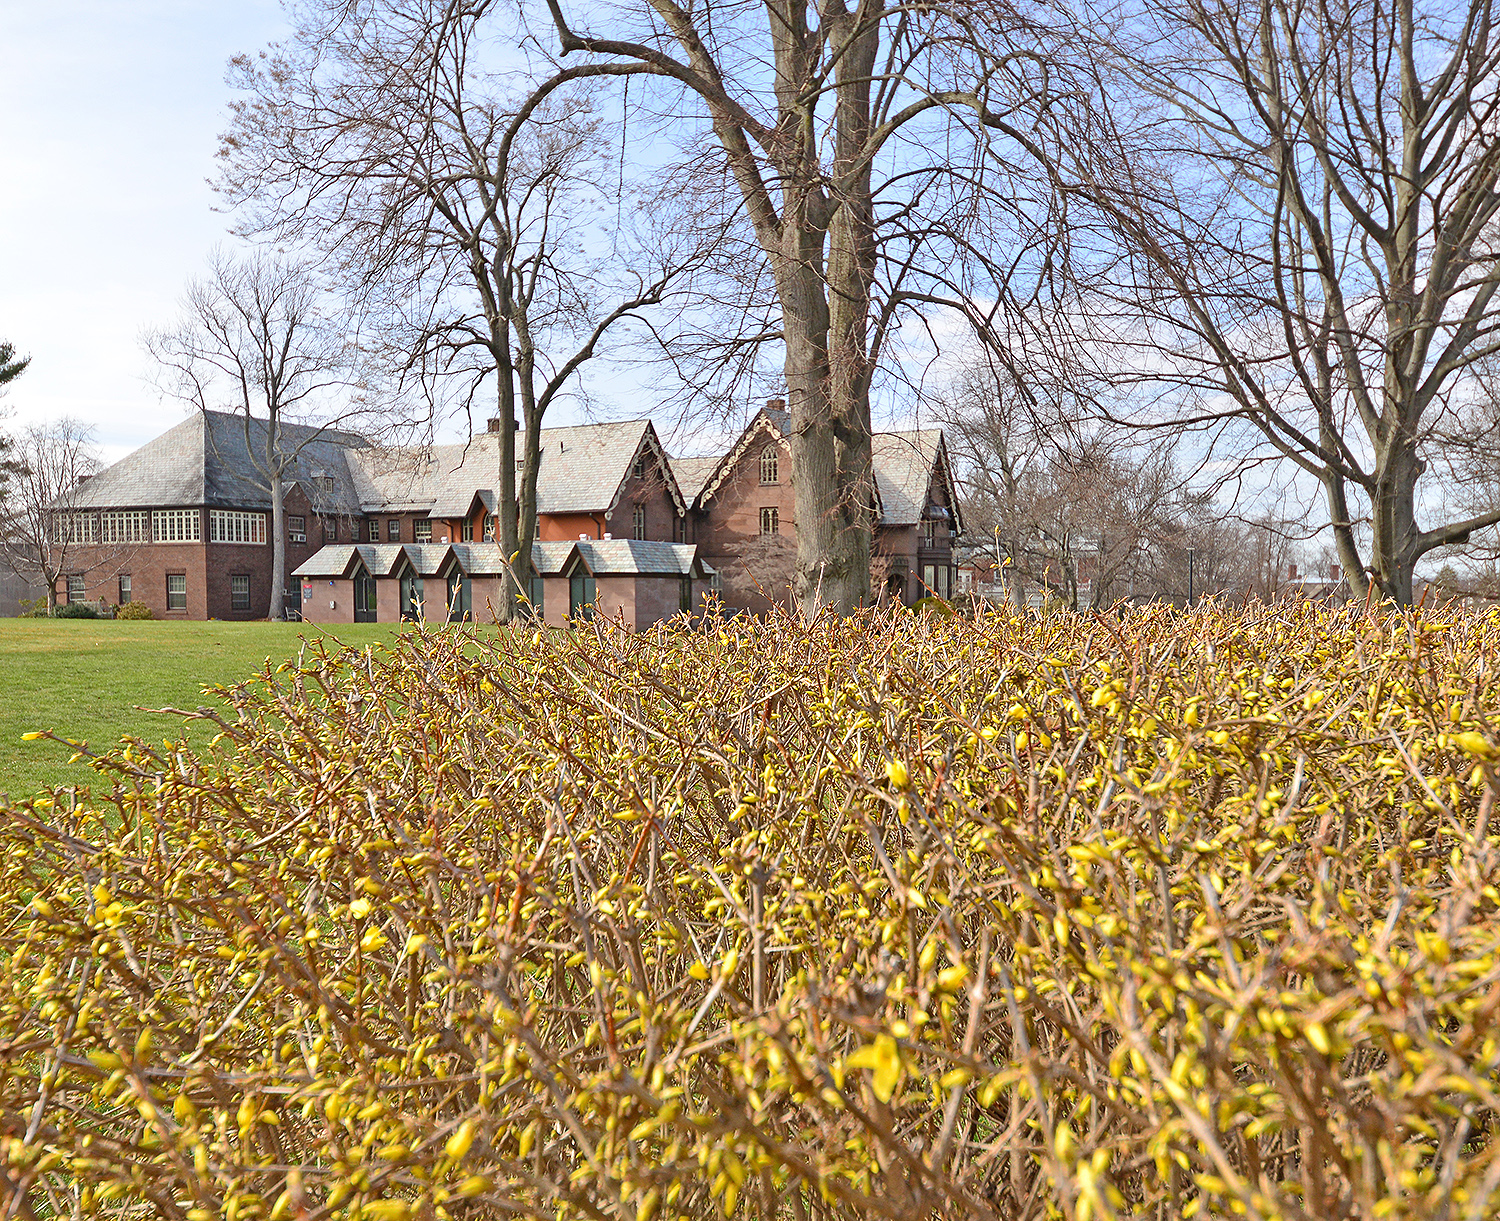 Golden forsythia buds start to bloom near the Davison Health Center on April 3.